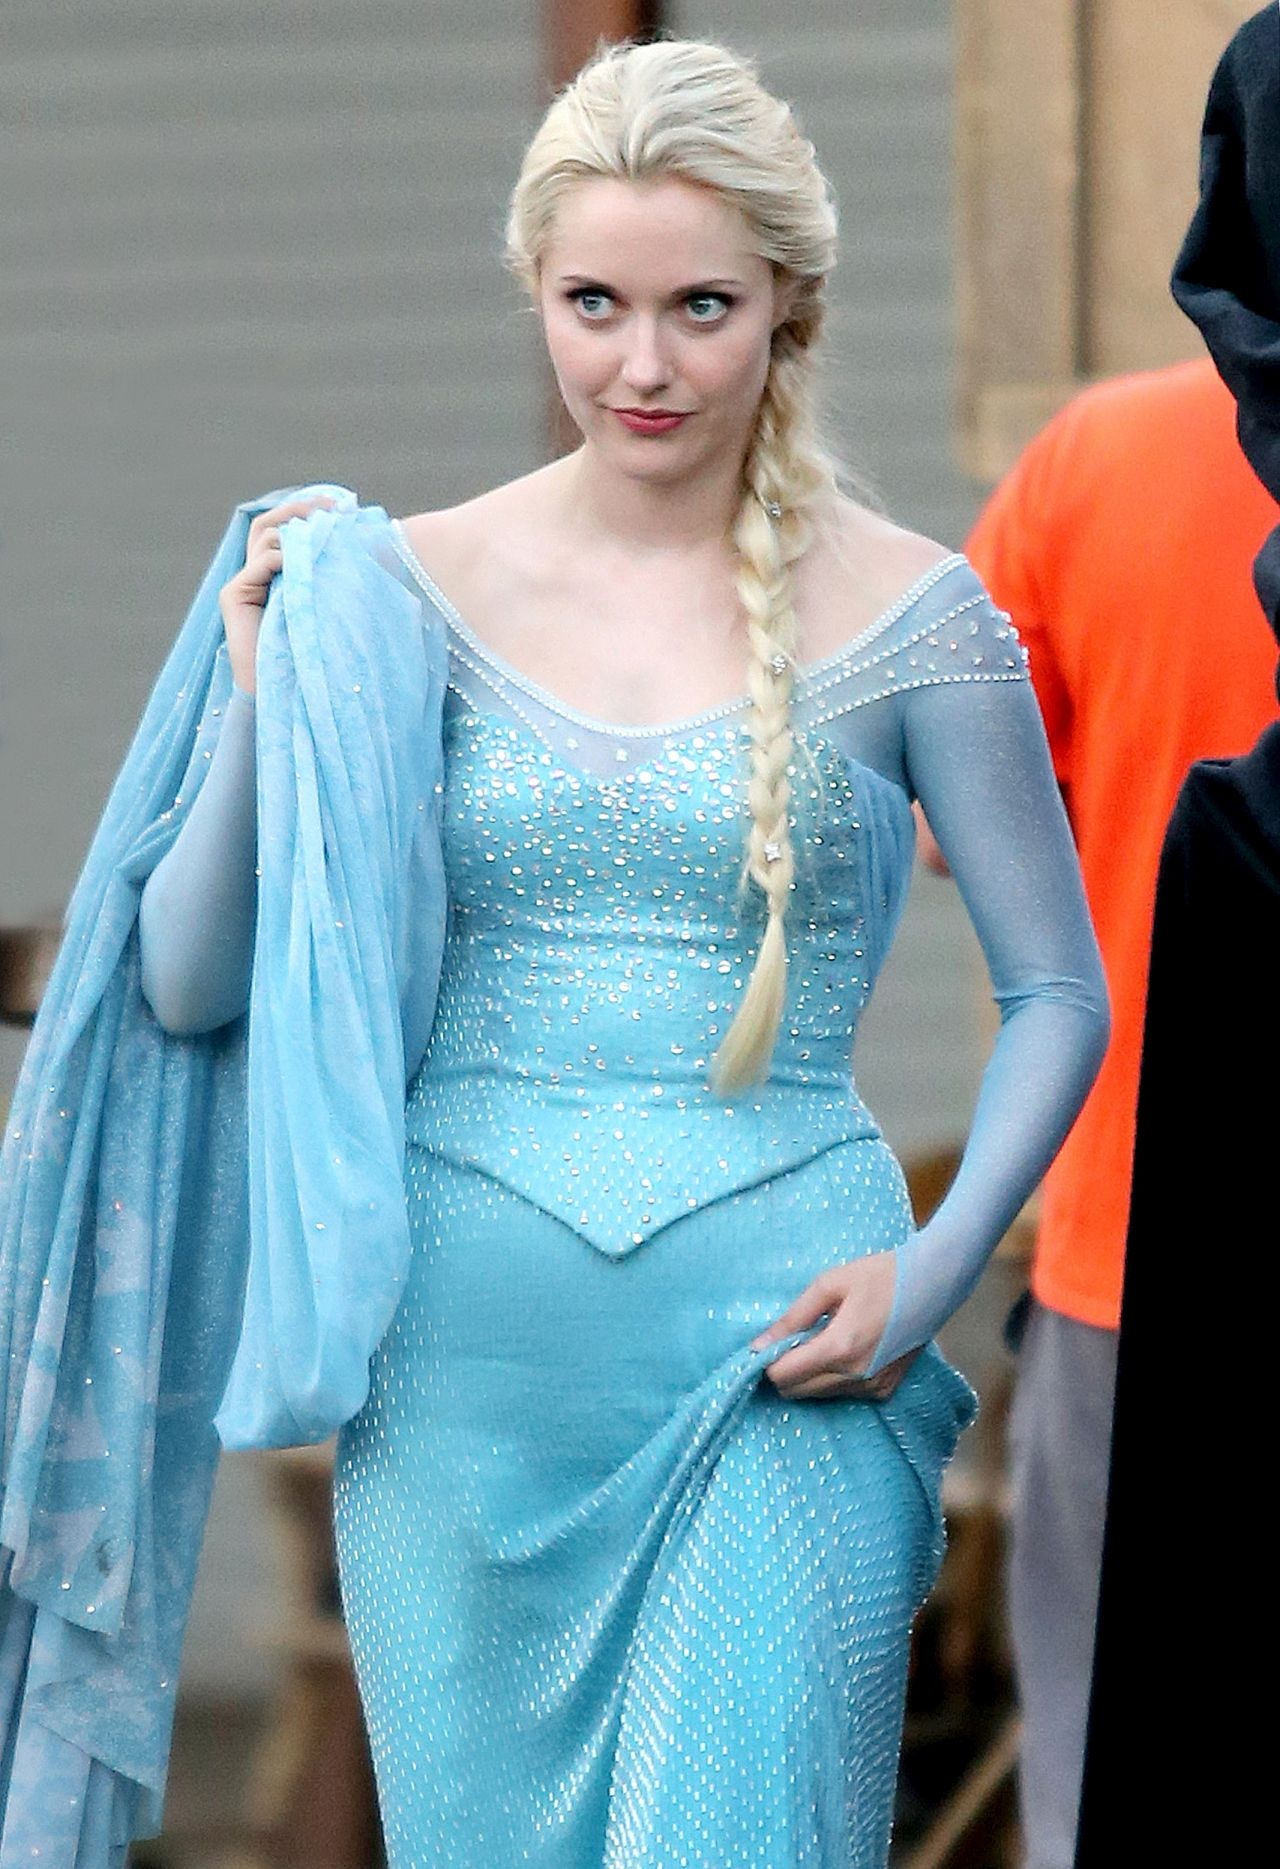 Georgina Haig – 'Once Upon a Time' Set Photos - Richmond, July 2014